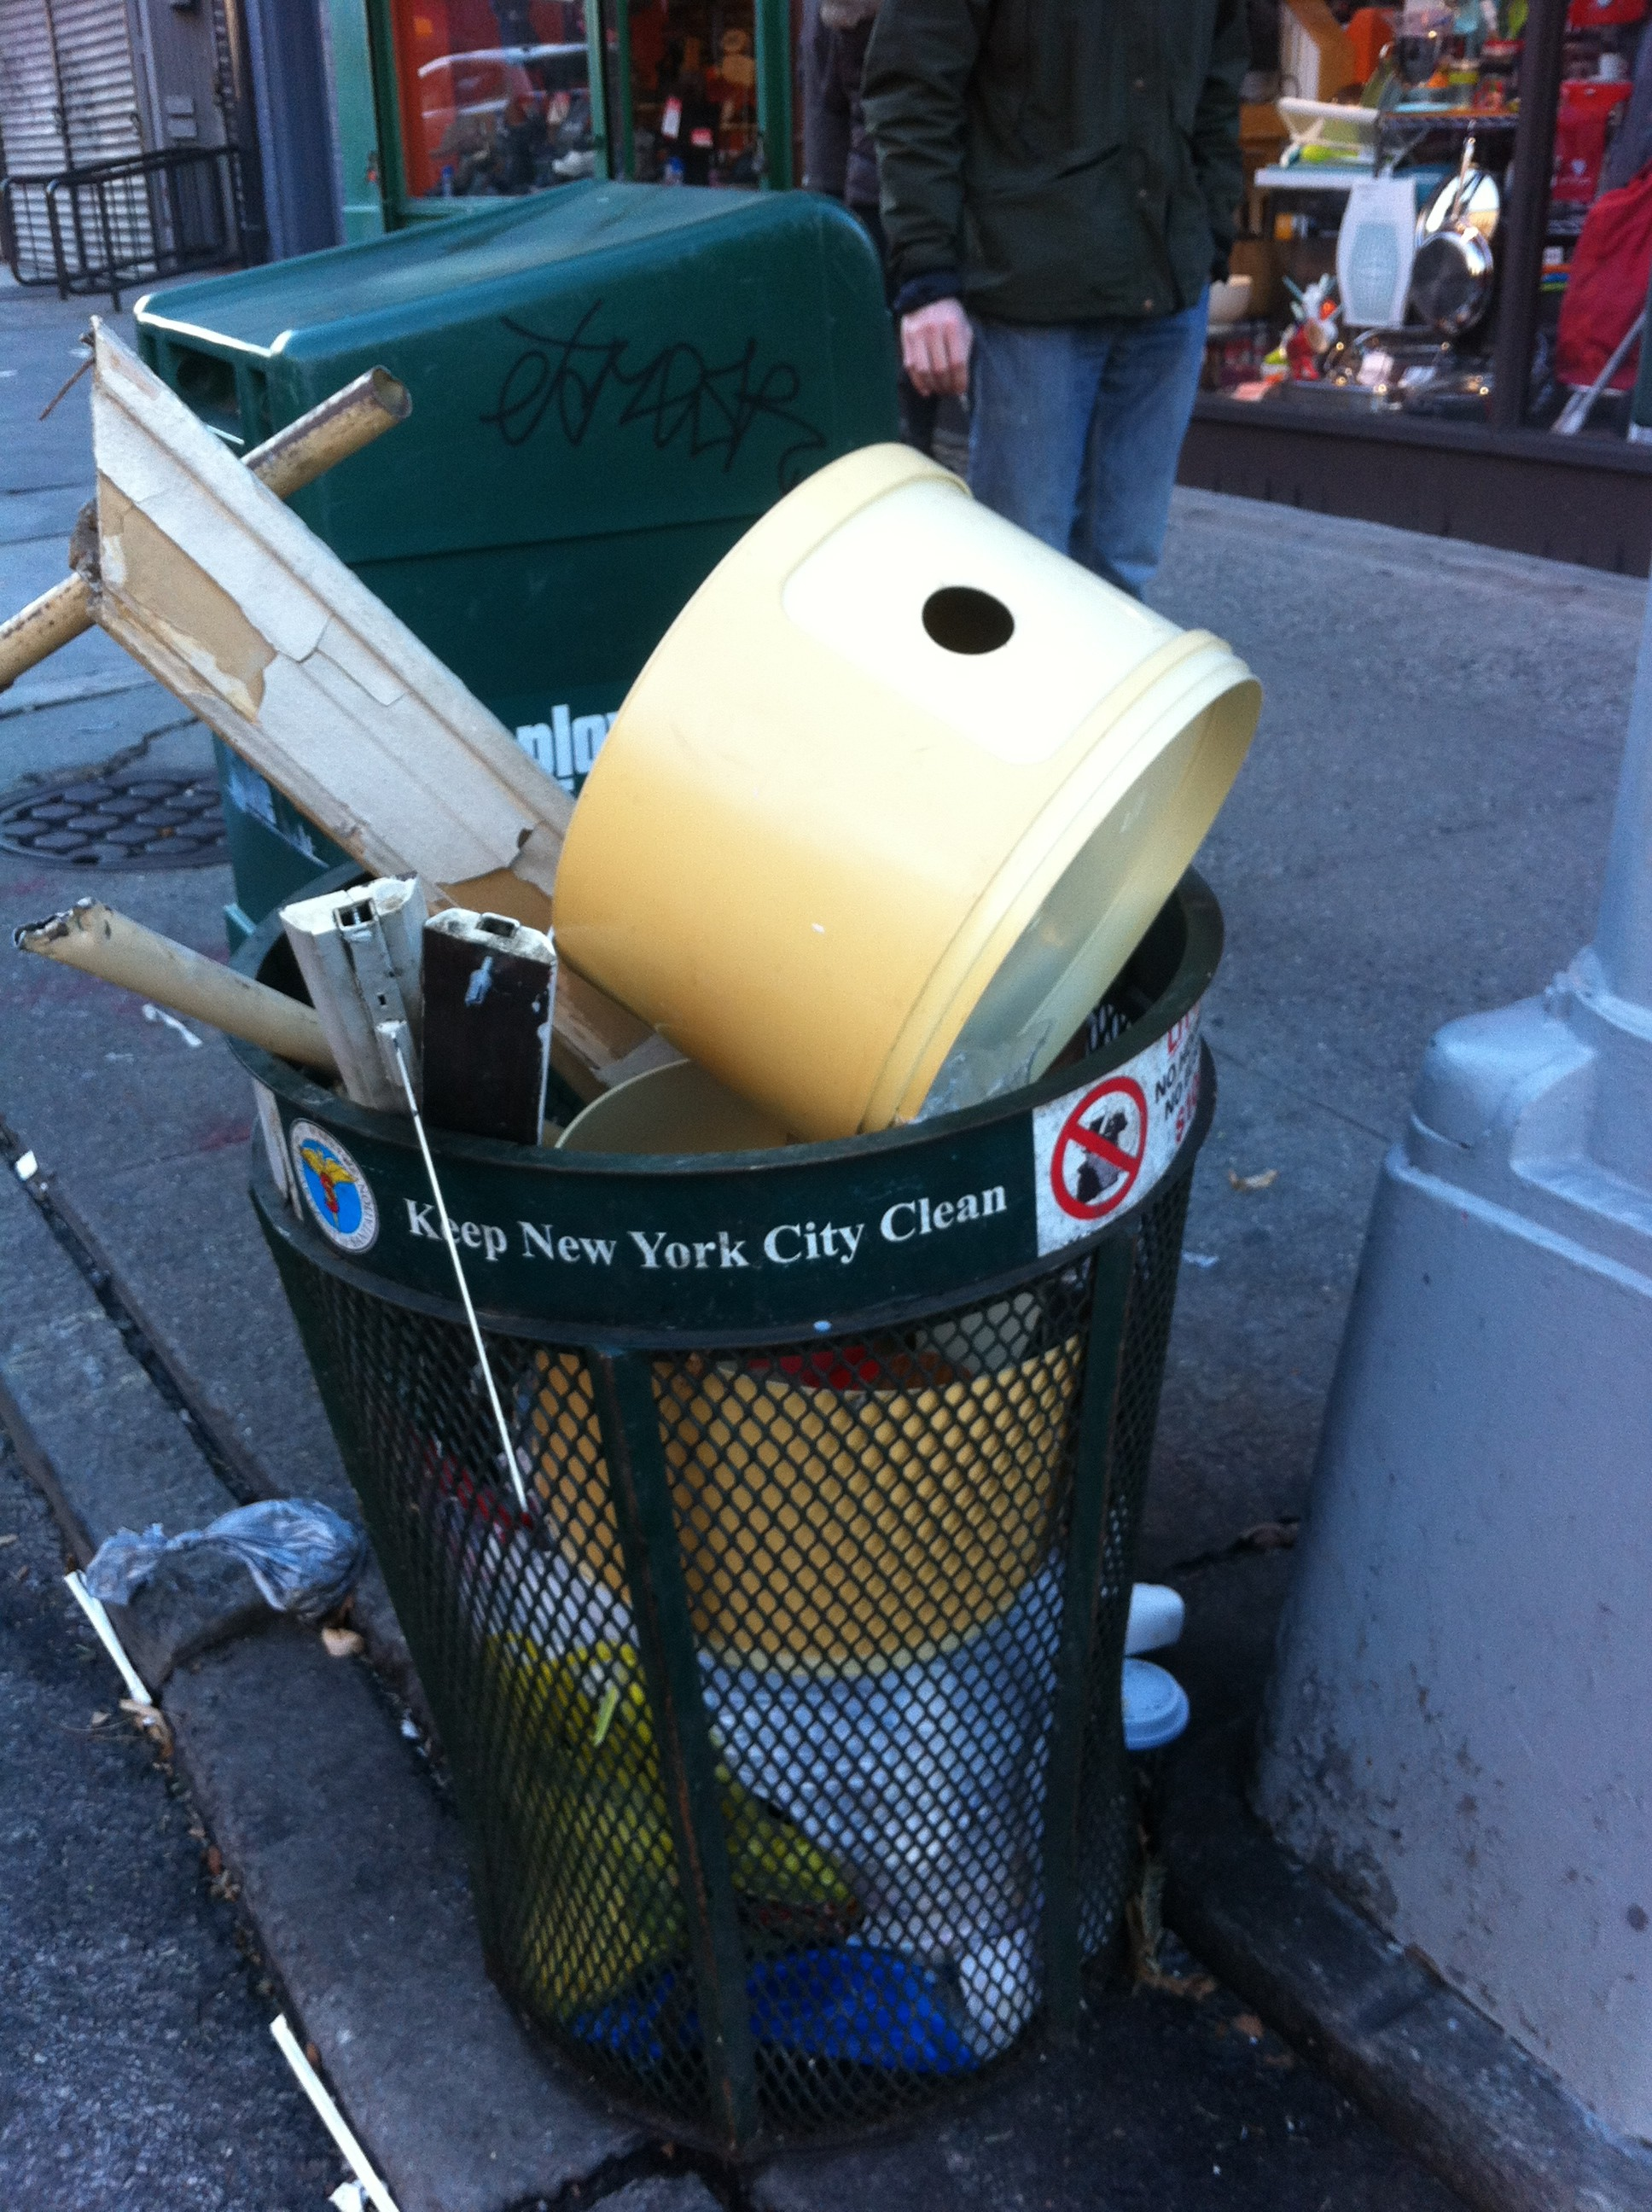 Another pic of Kartell side table in NYC trash can